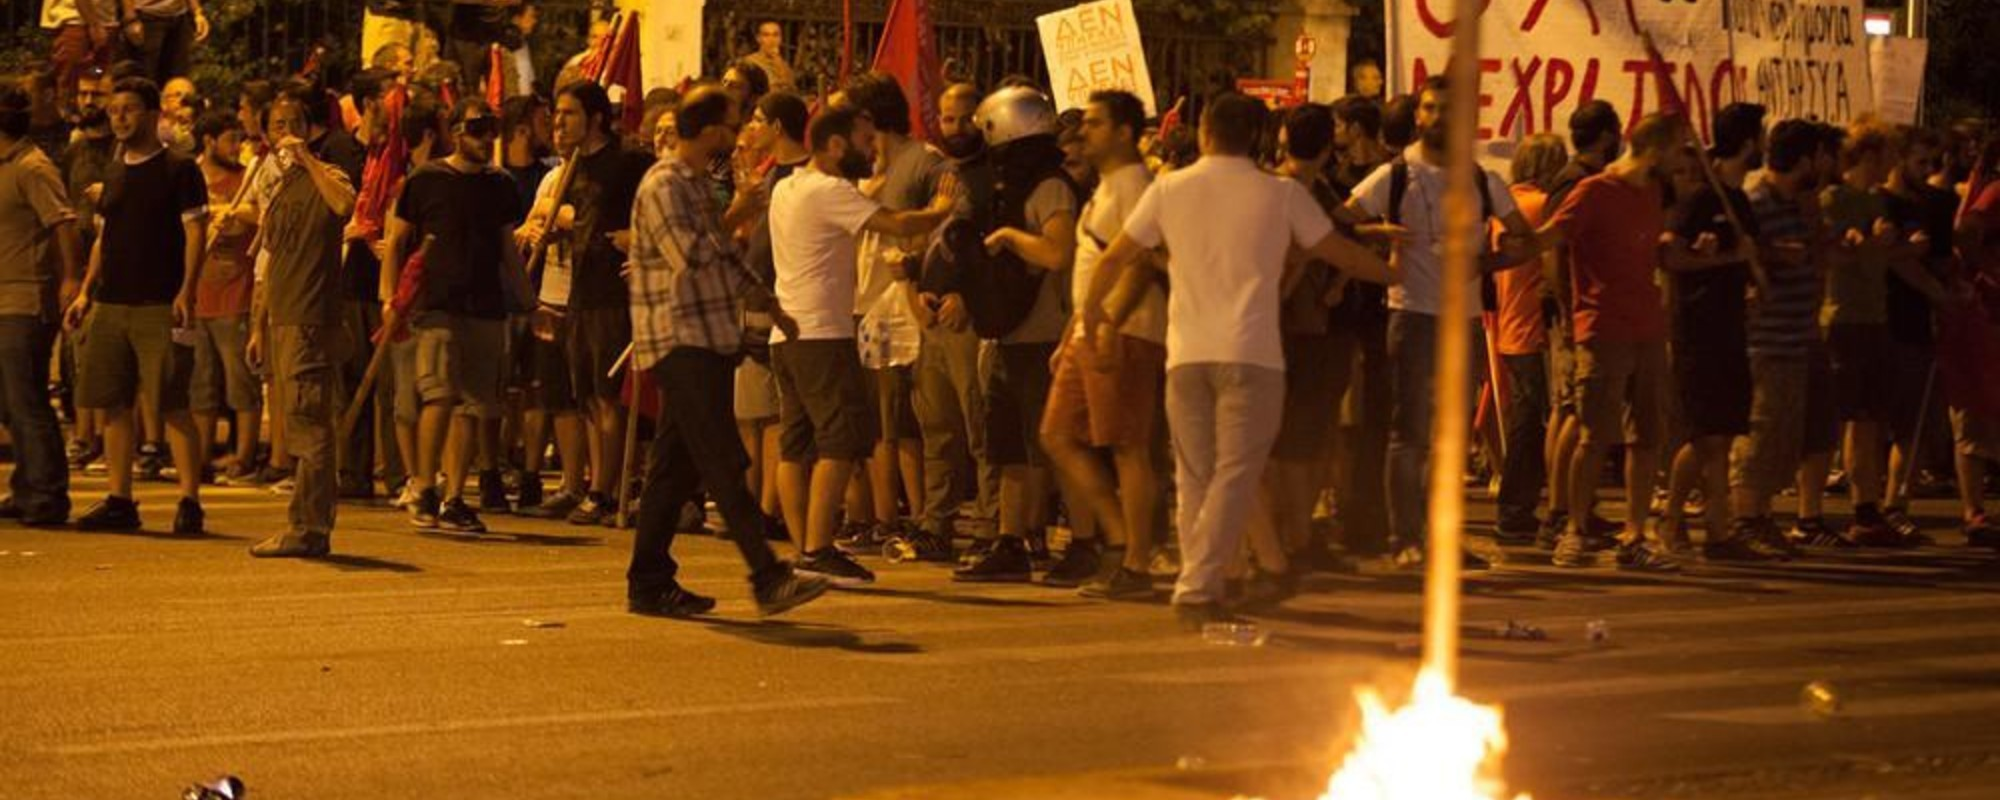 Greeks Saluted the Latest Bailout With Tear Gas and Molotov Bombs Last Night